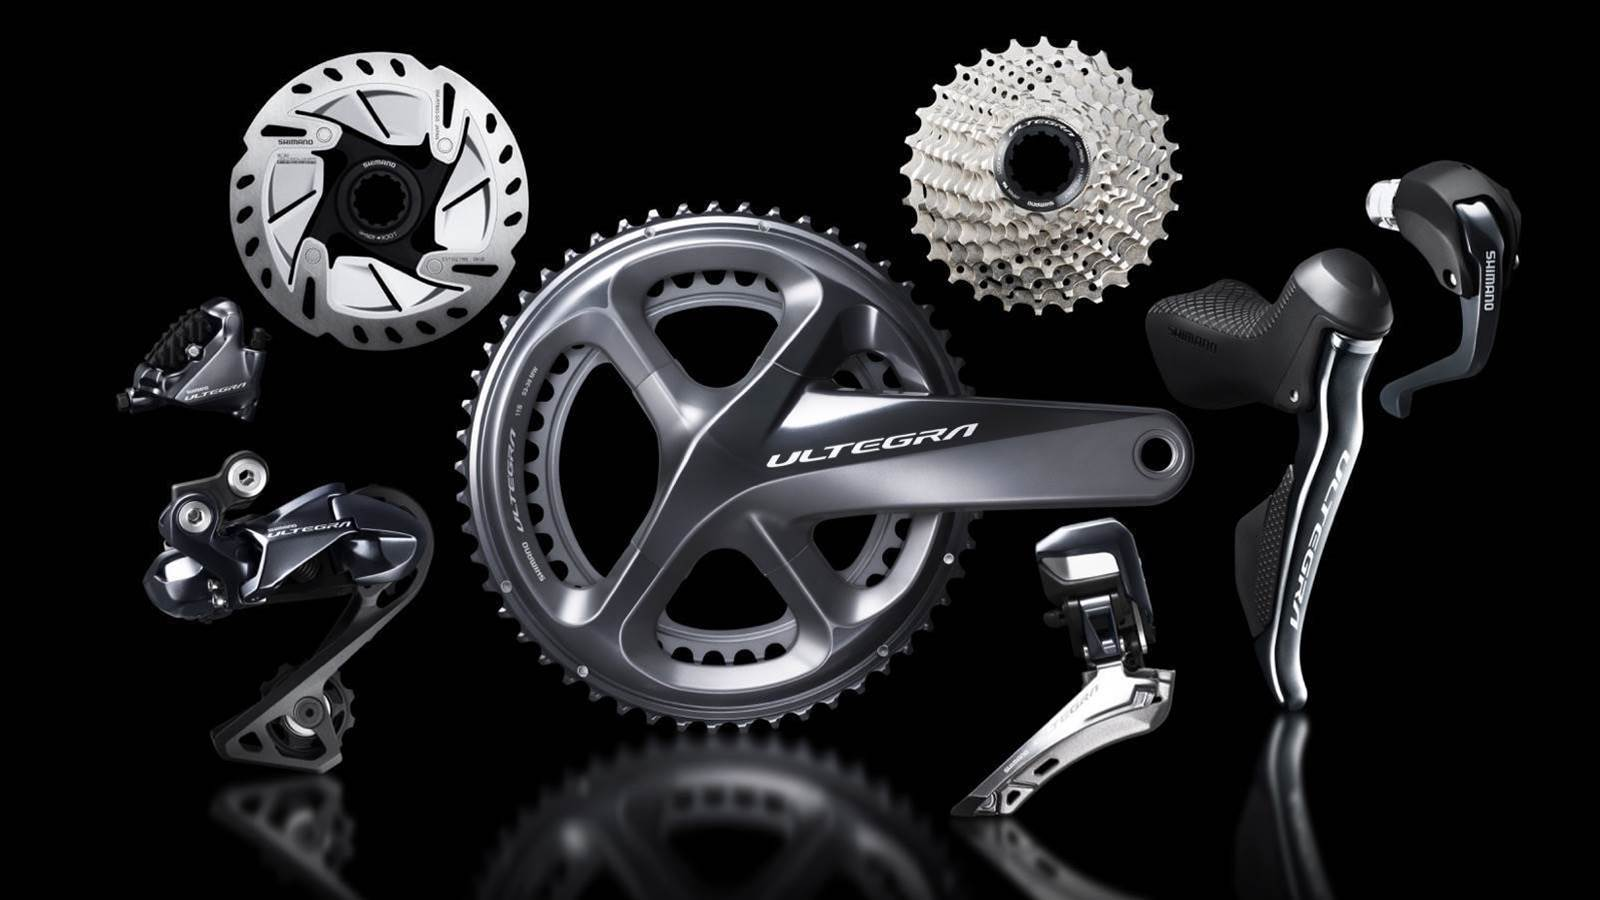 Shimano reveal R8000 - the new Ultegra group set